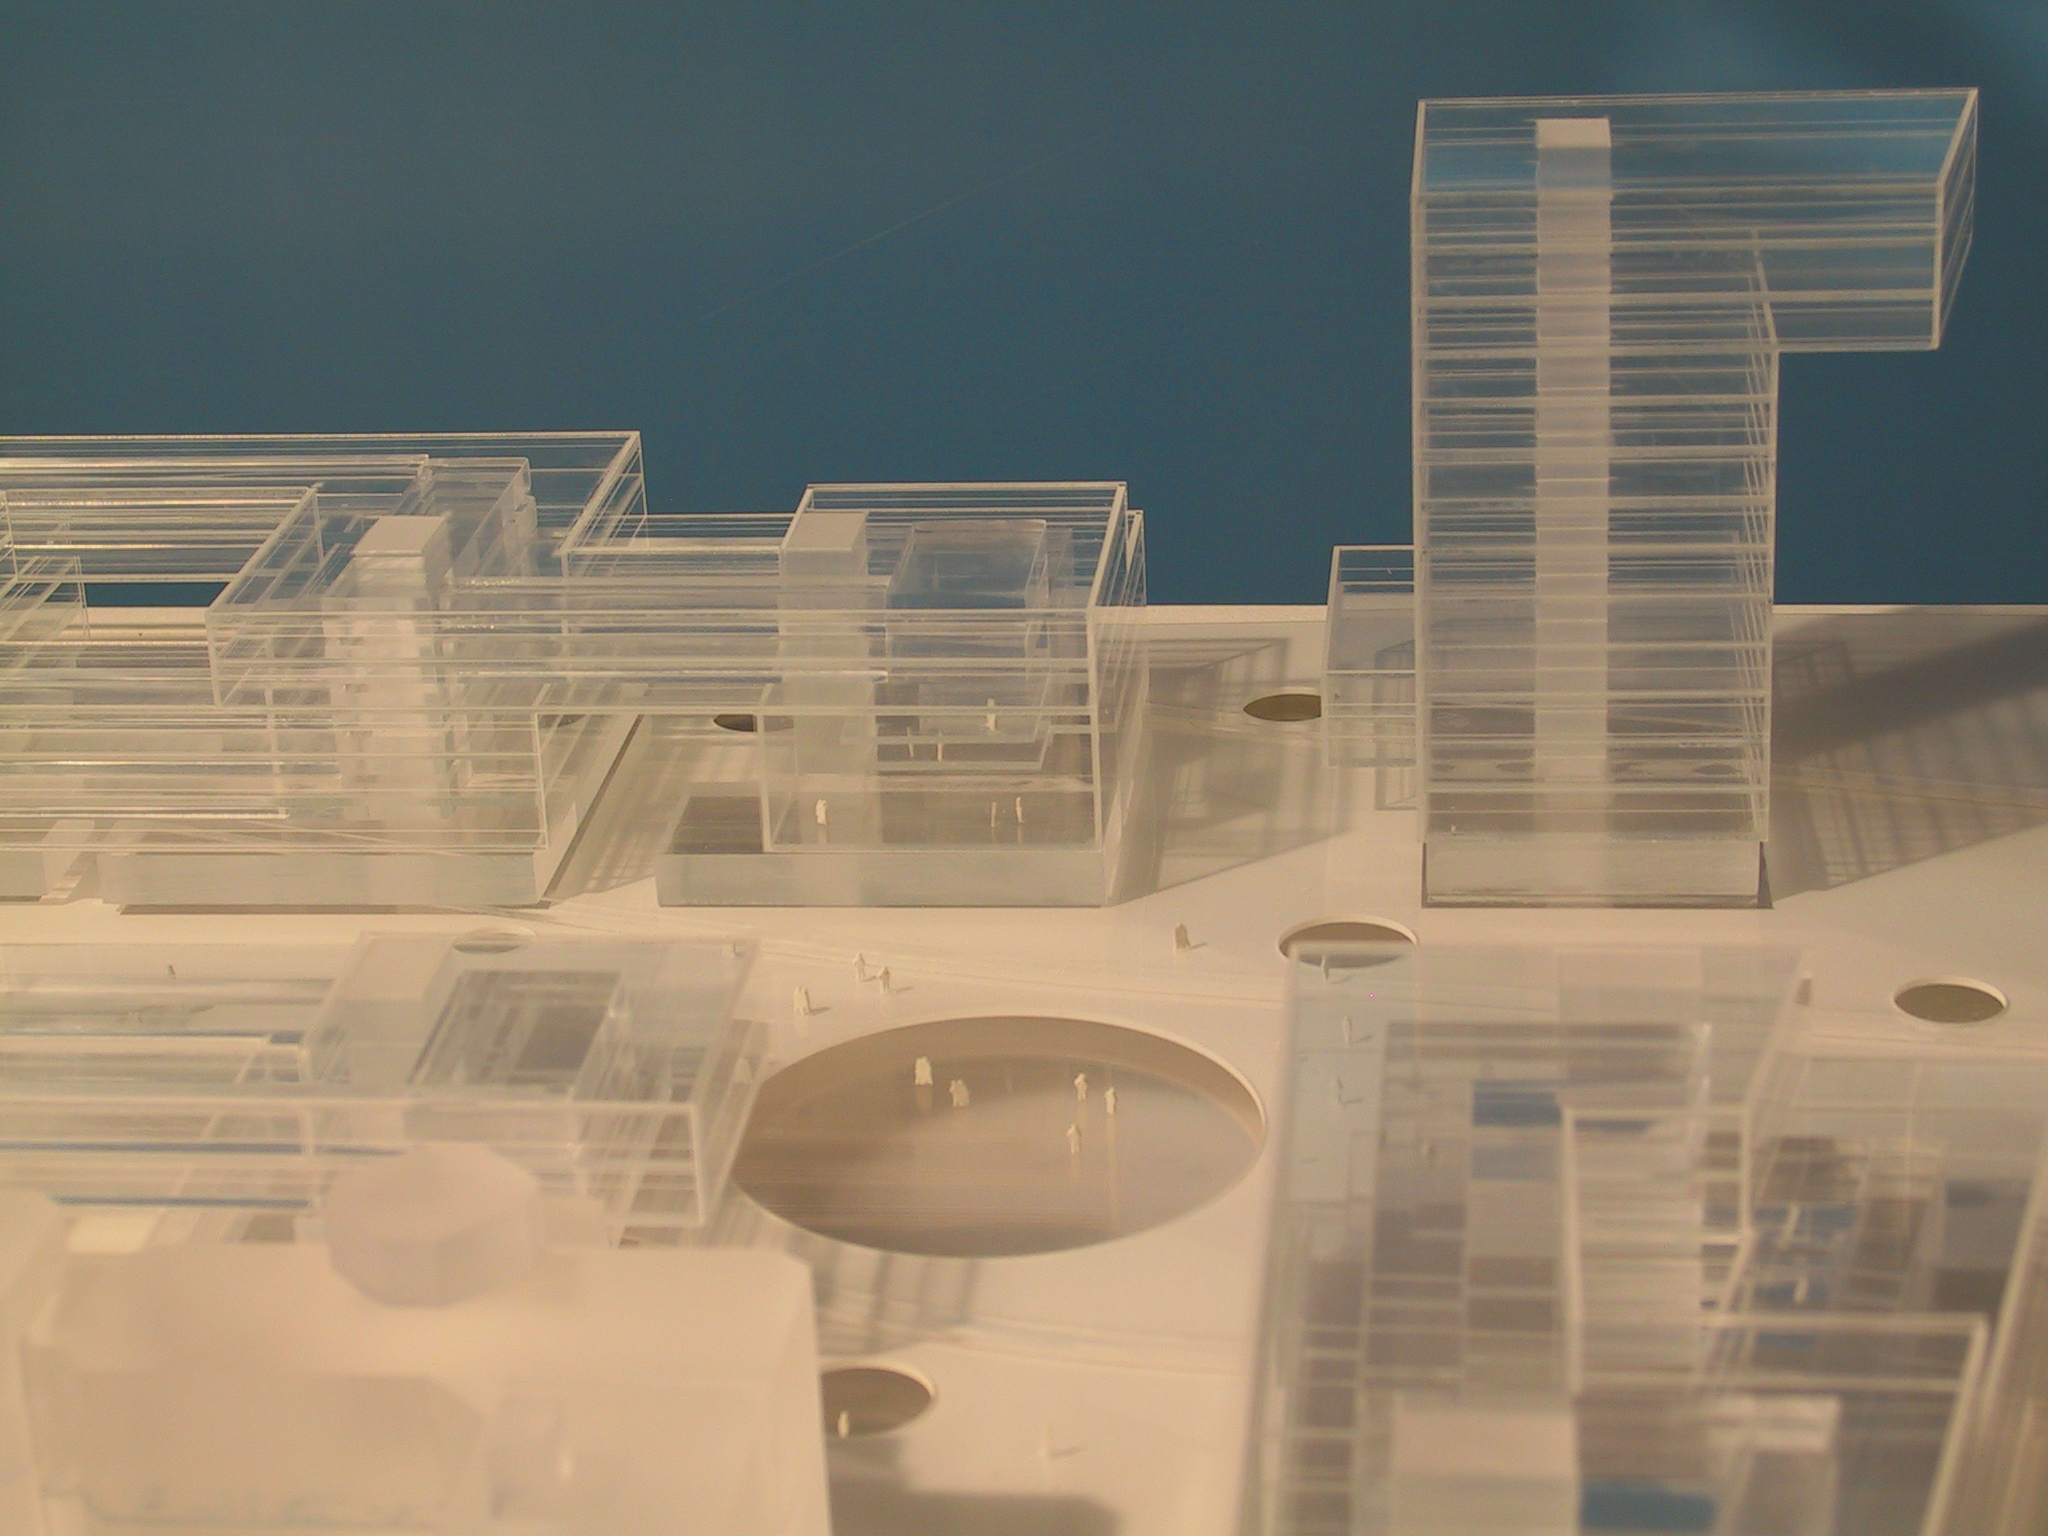 Europees parlement maquette